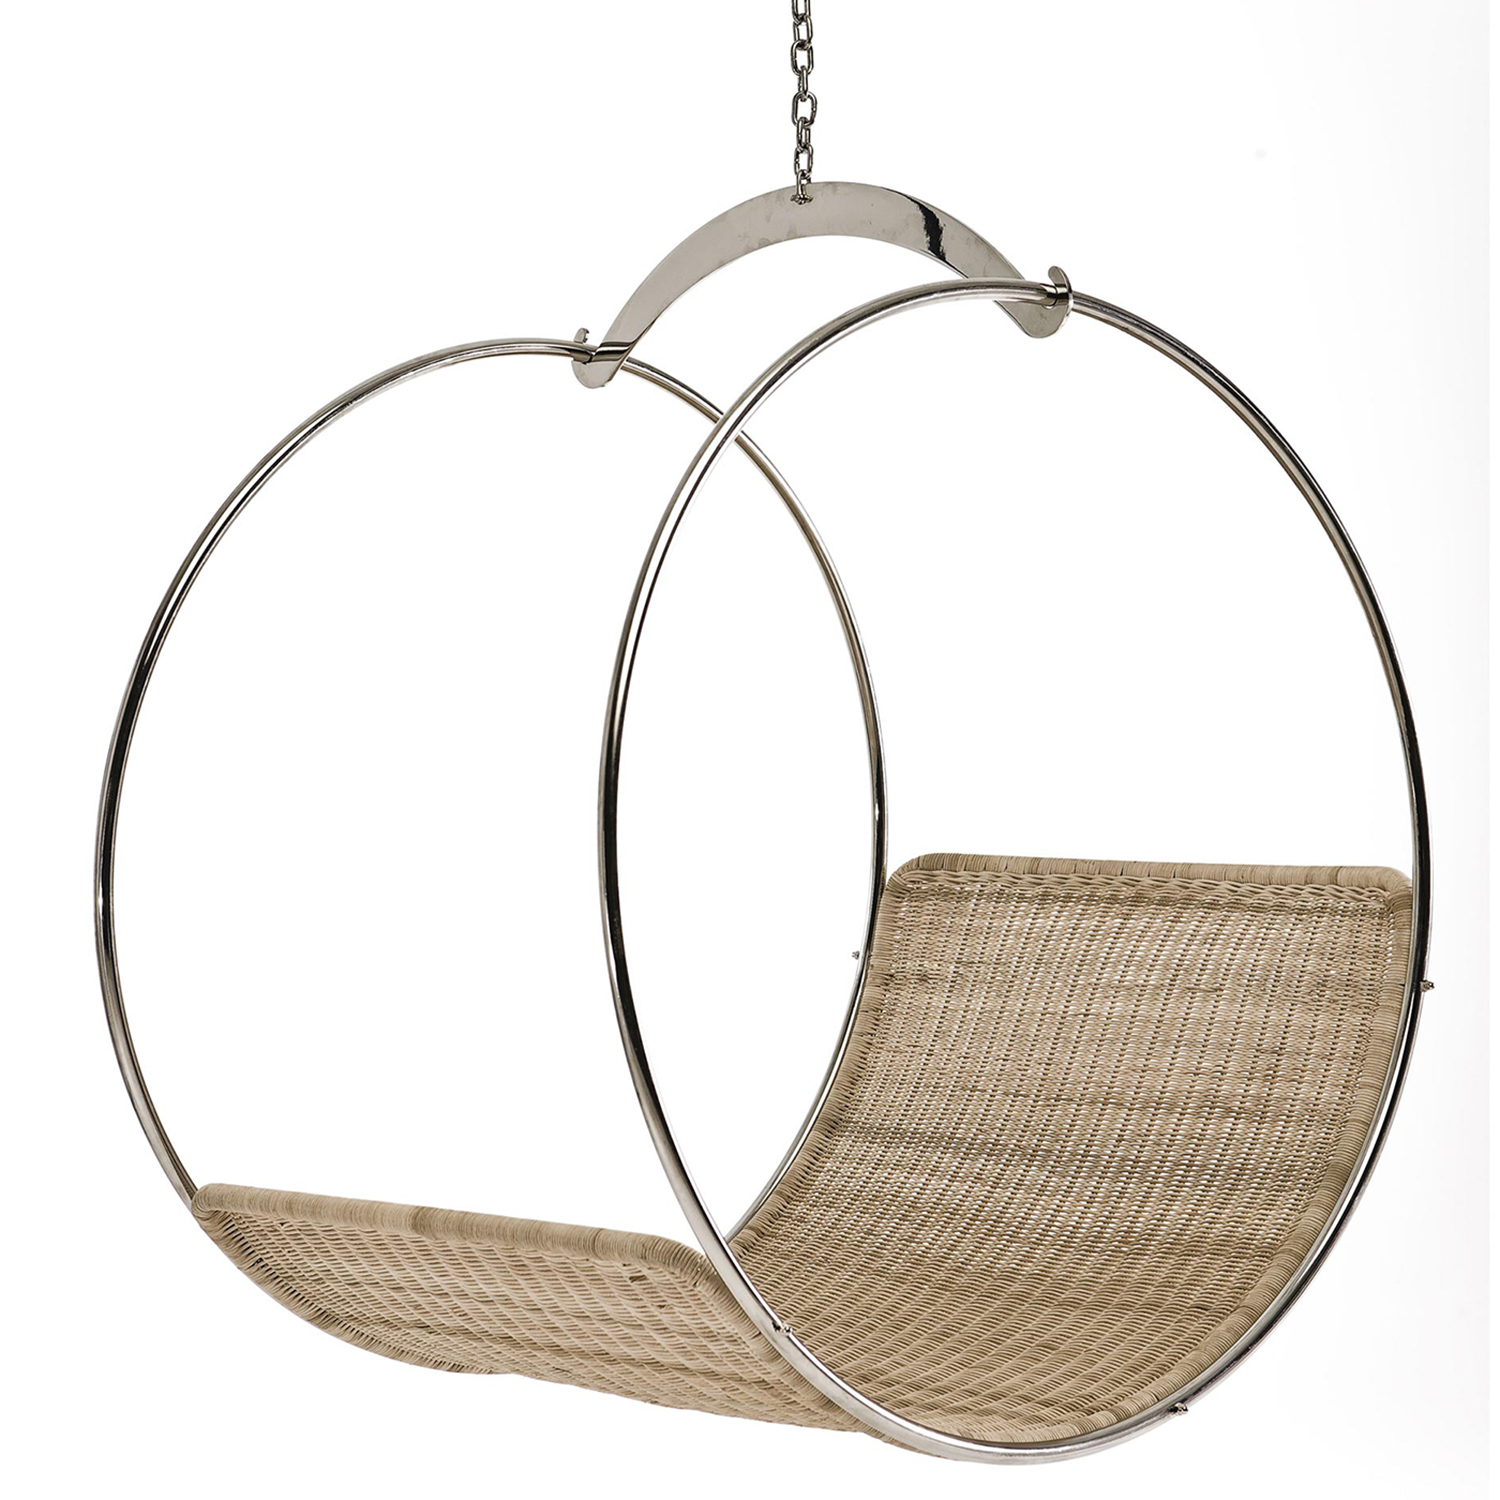 Swing Chair - Wicker (Made to Order)